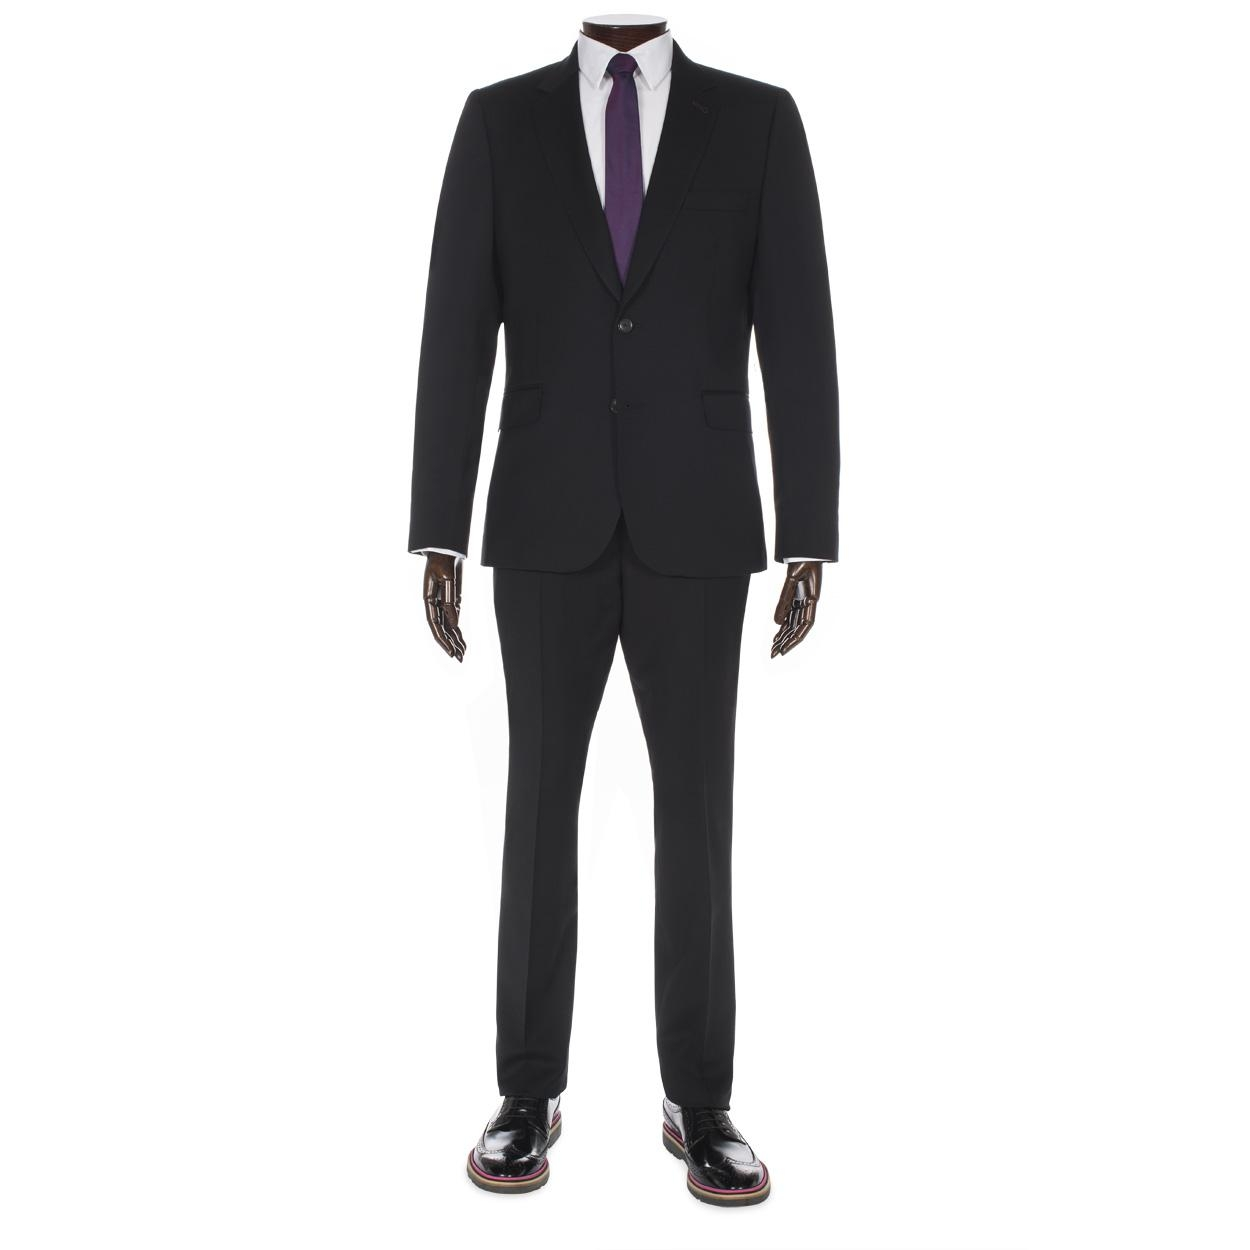 Suit clipart. Awesome design digital collection